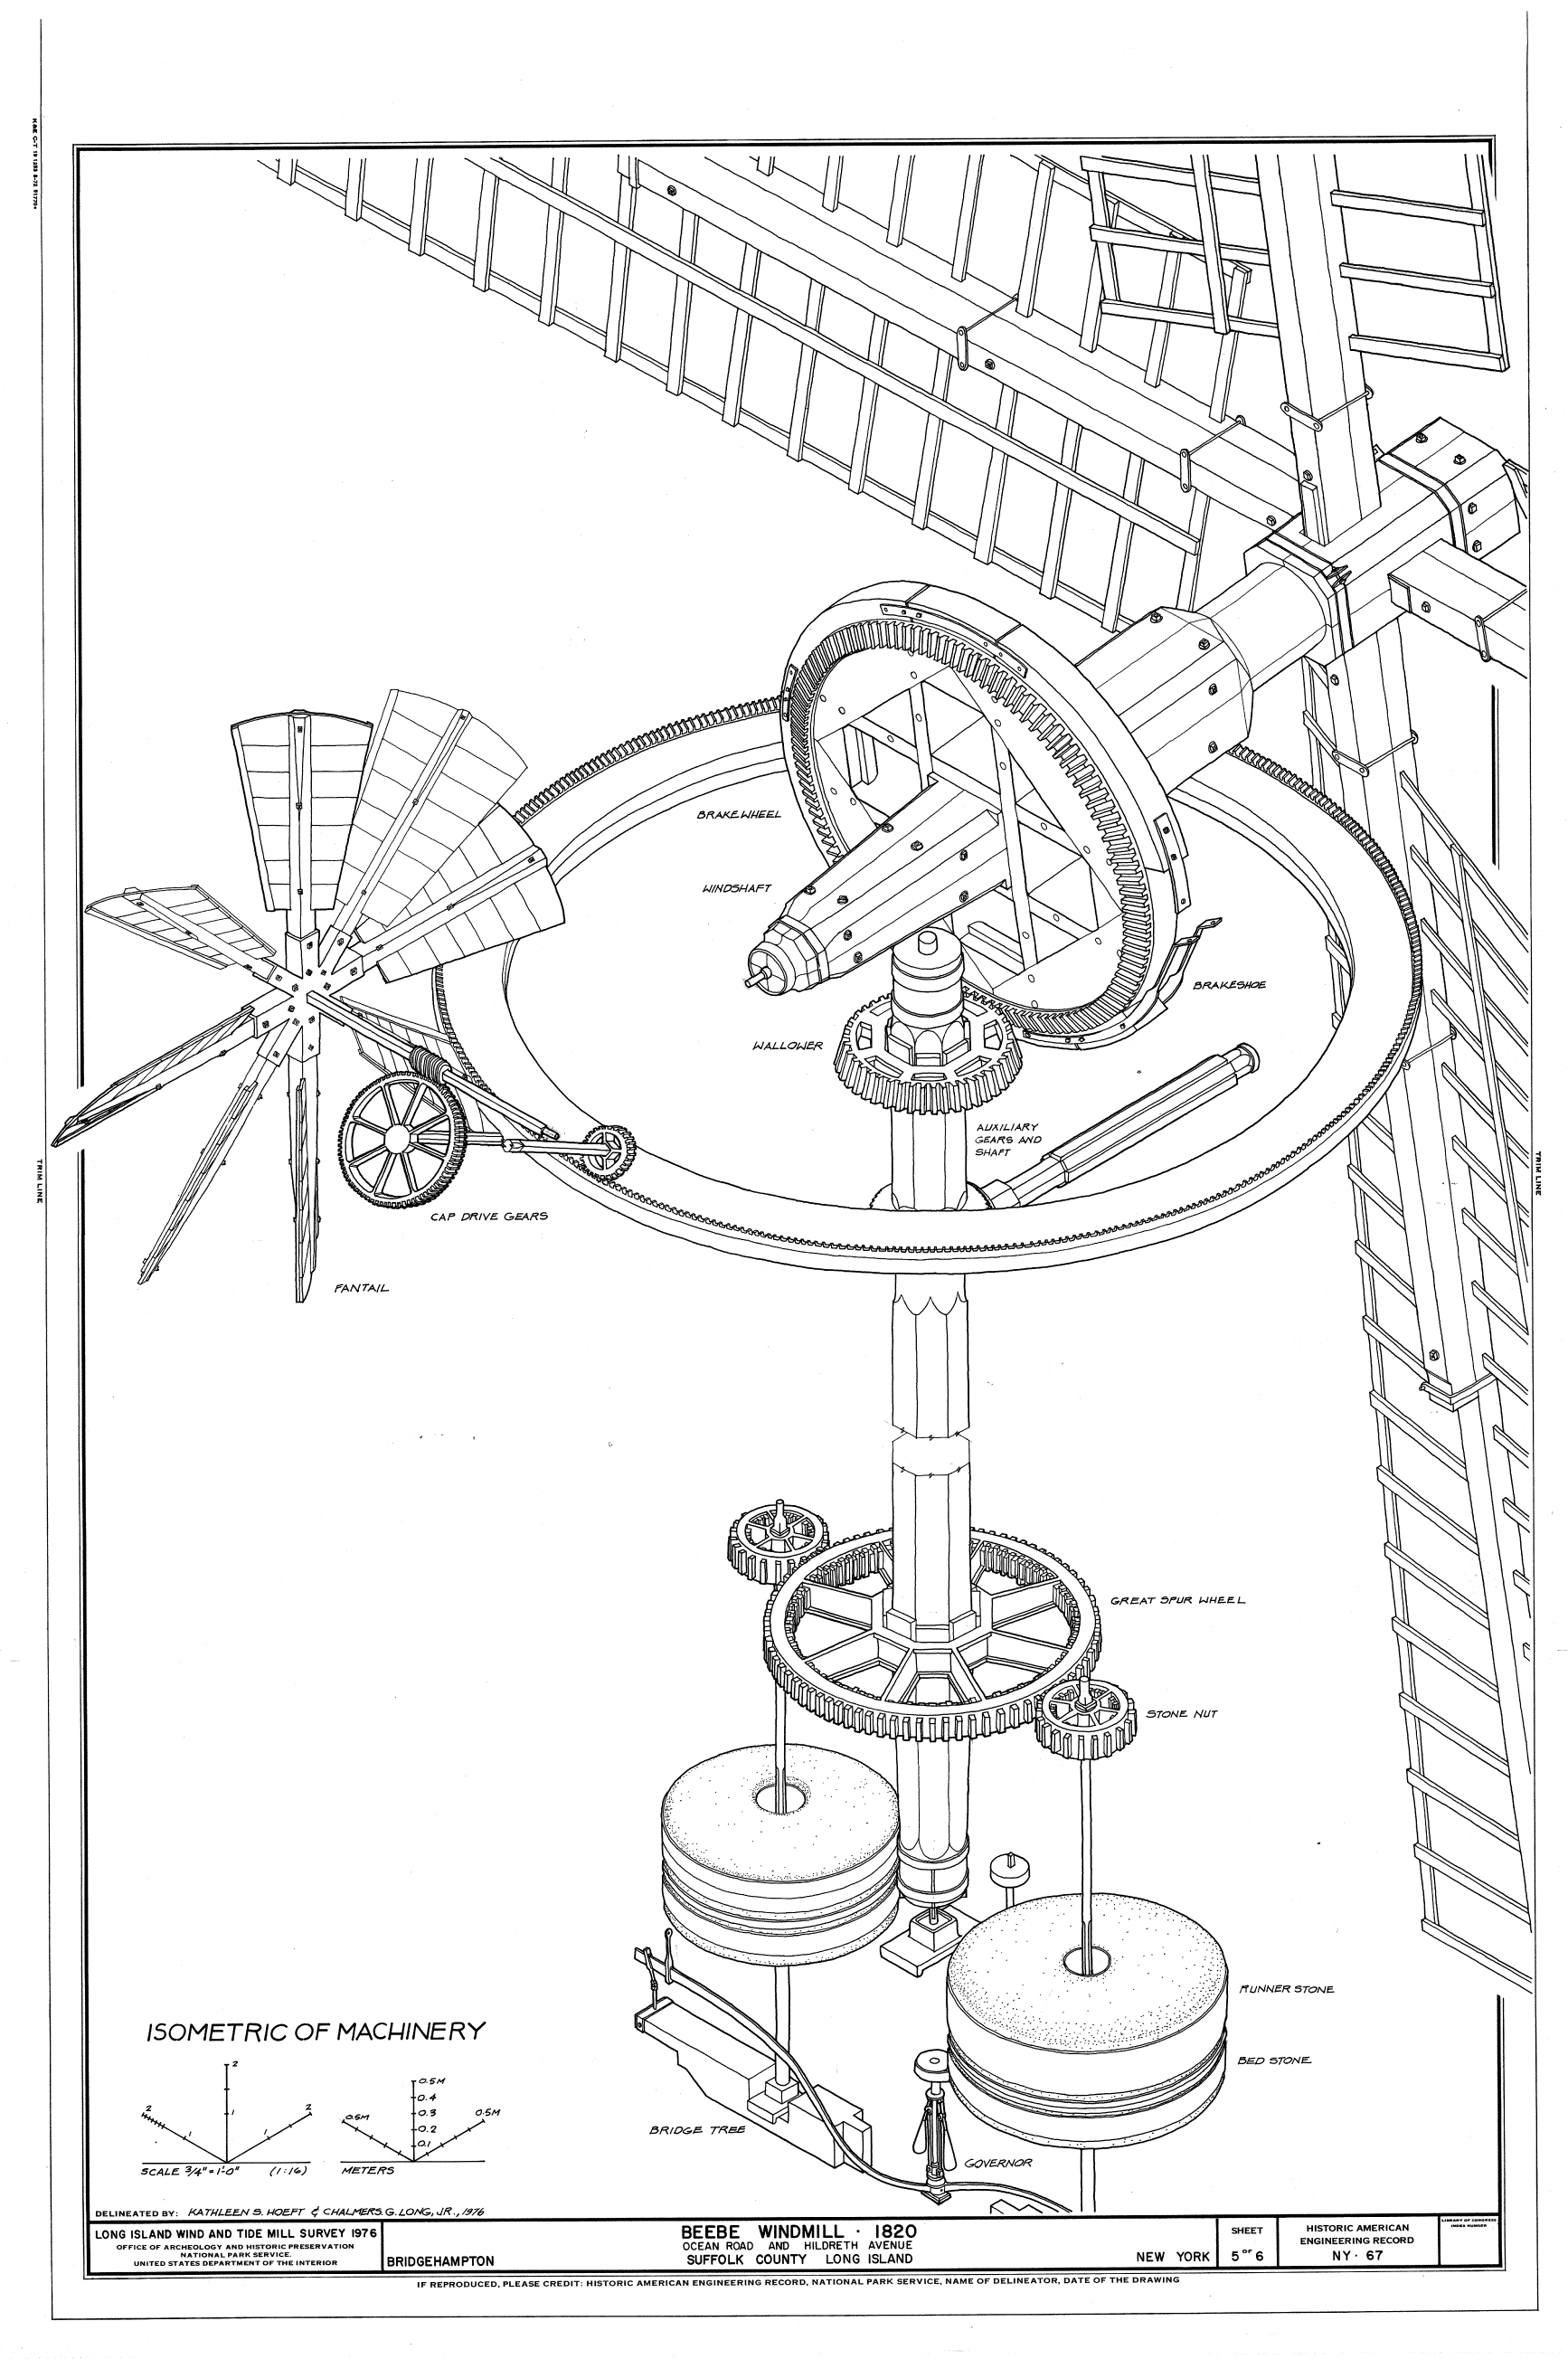 Wind Powered Factories History And Future Of Industrial Windmills Wiring Diagram Likewise Power Plant Schematic Wingding Fantail Windmill Mechanism Illustration